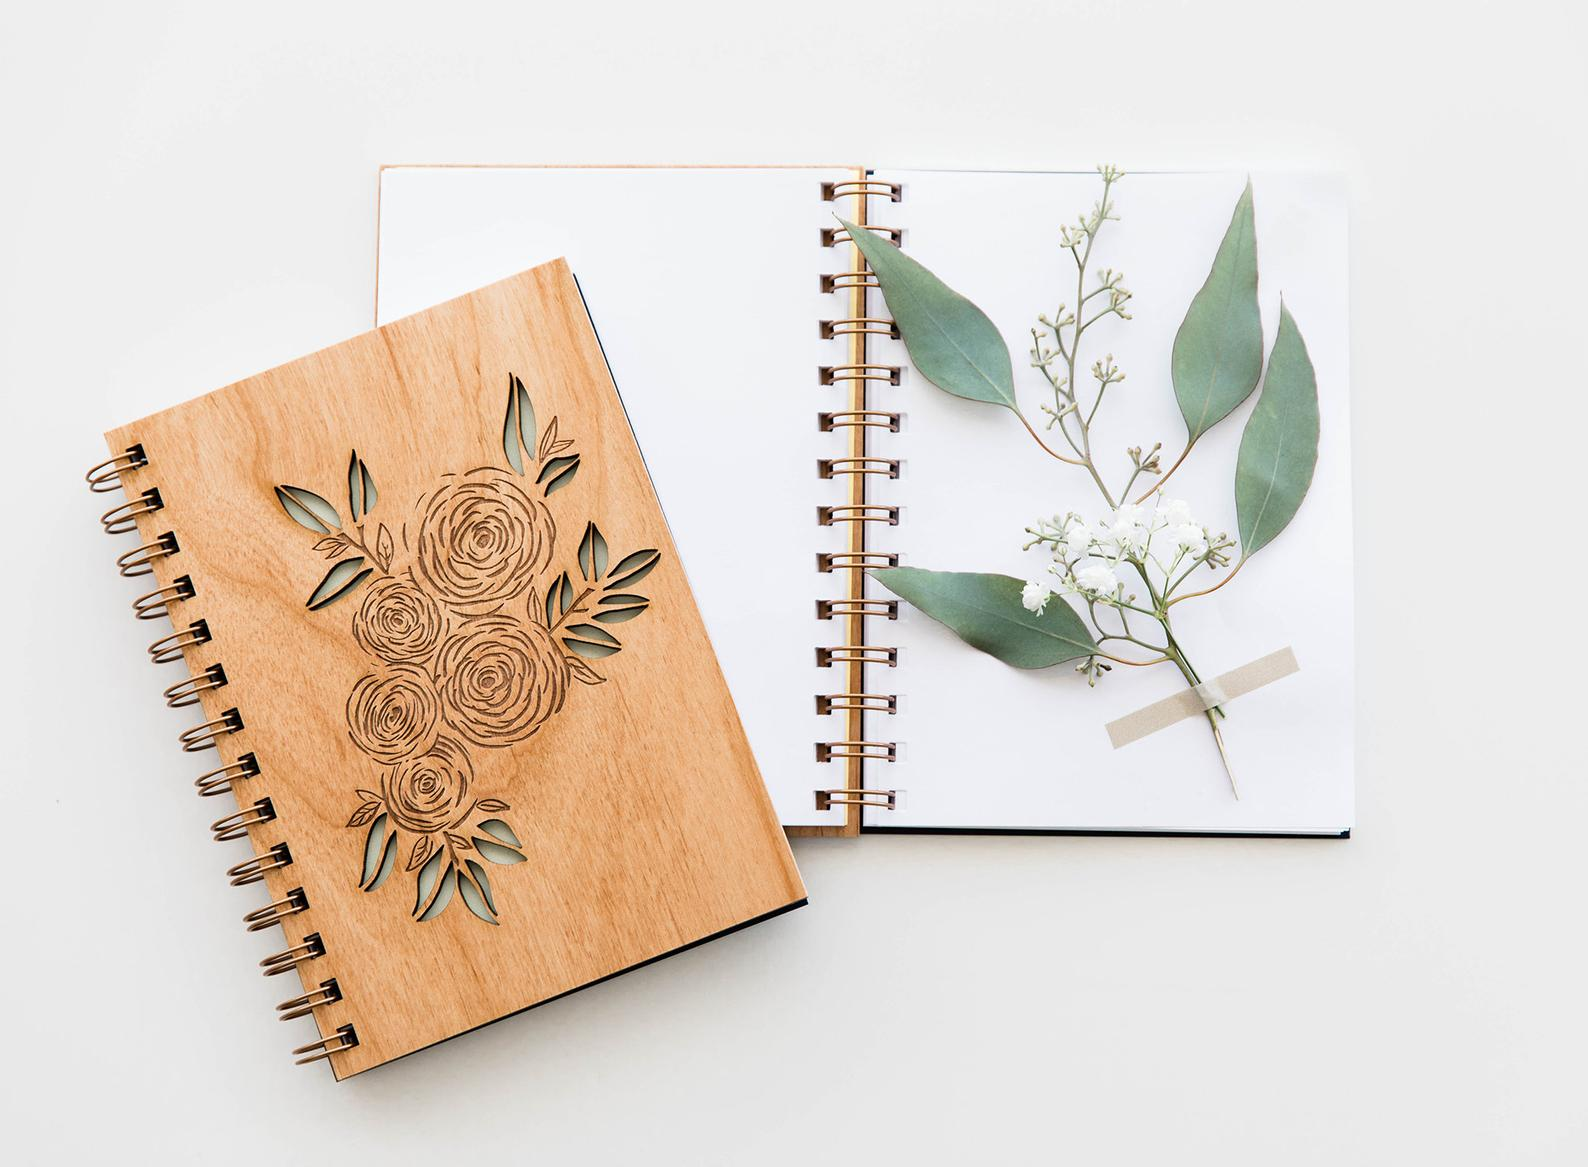 laser cut wood journal mother's day gift